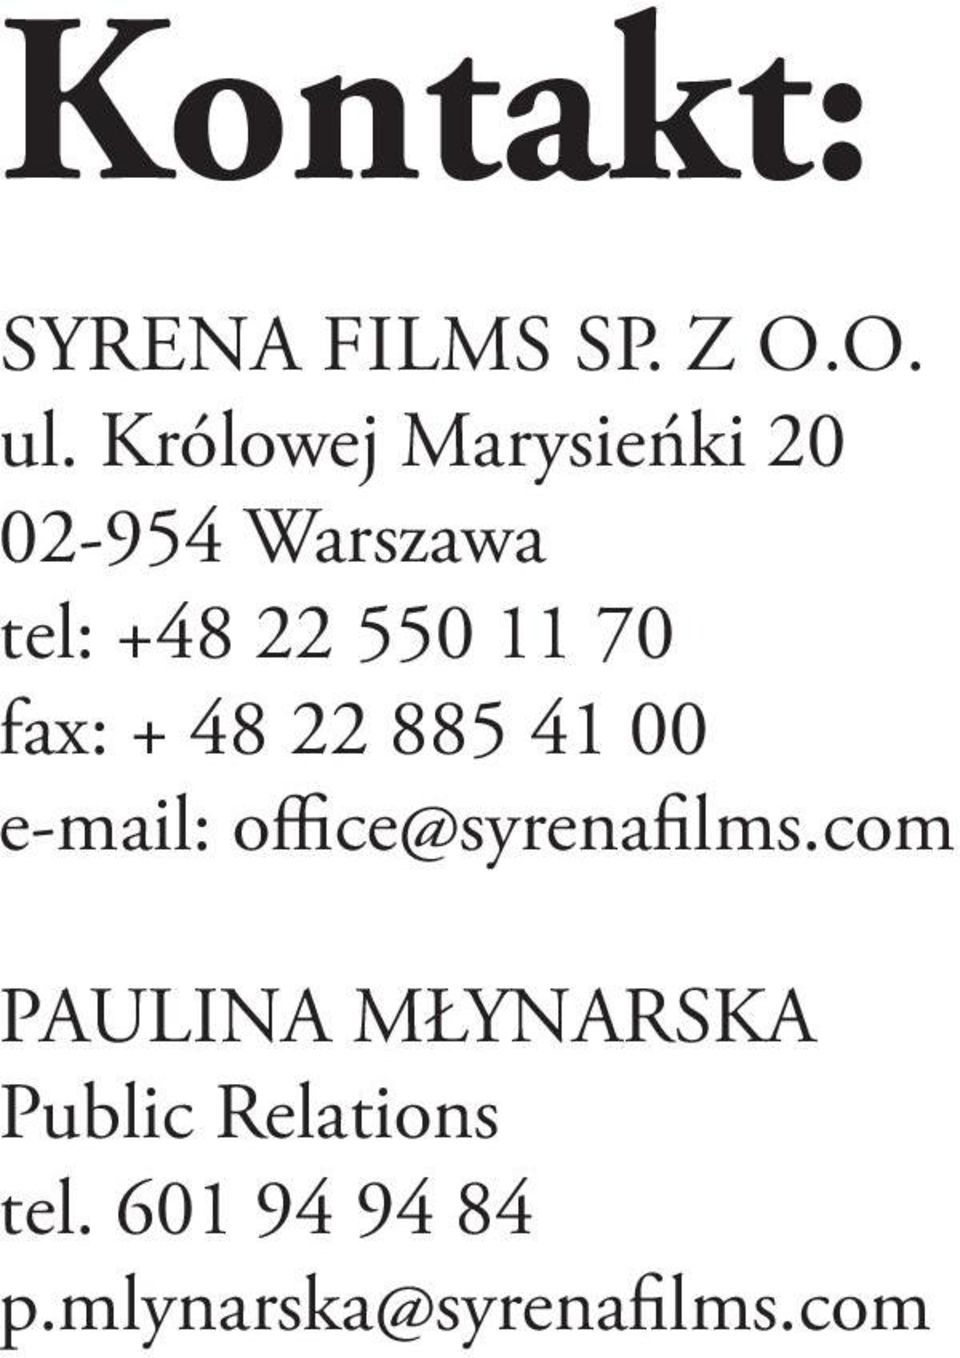 70 fax: + 48 22 885 41 00 e-mail: office@syrenafilms.